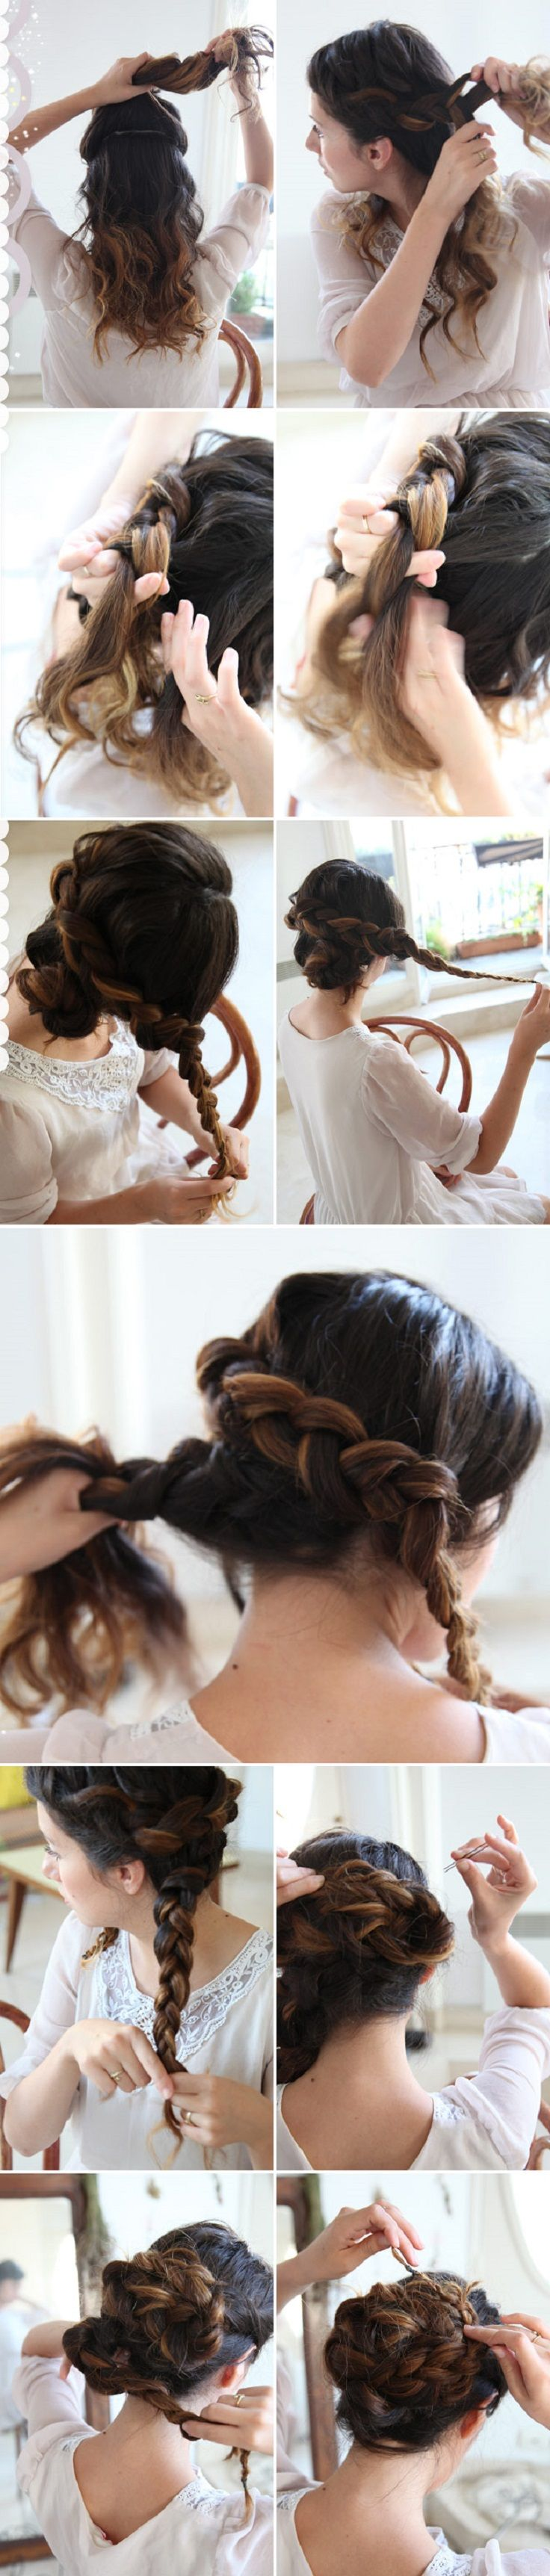 Take a look at this 10 great braid tutorials that will easily lead you to the final result. Just follow the pictures carefully step by step and you will have amazing hairstyles in some minutes! #Hairstyles